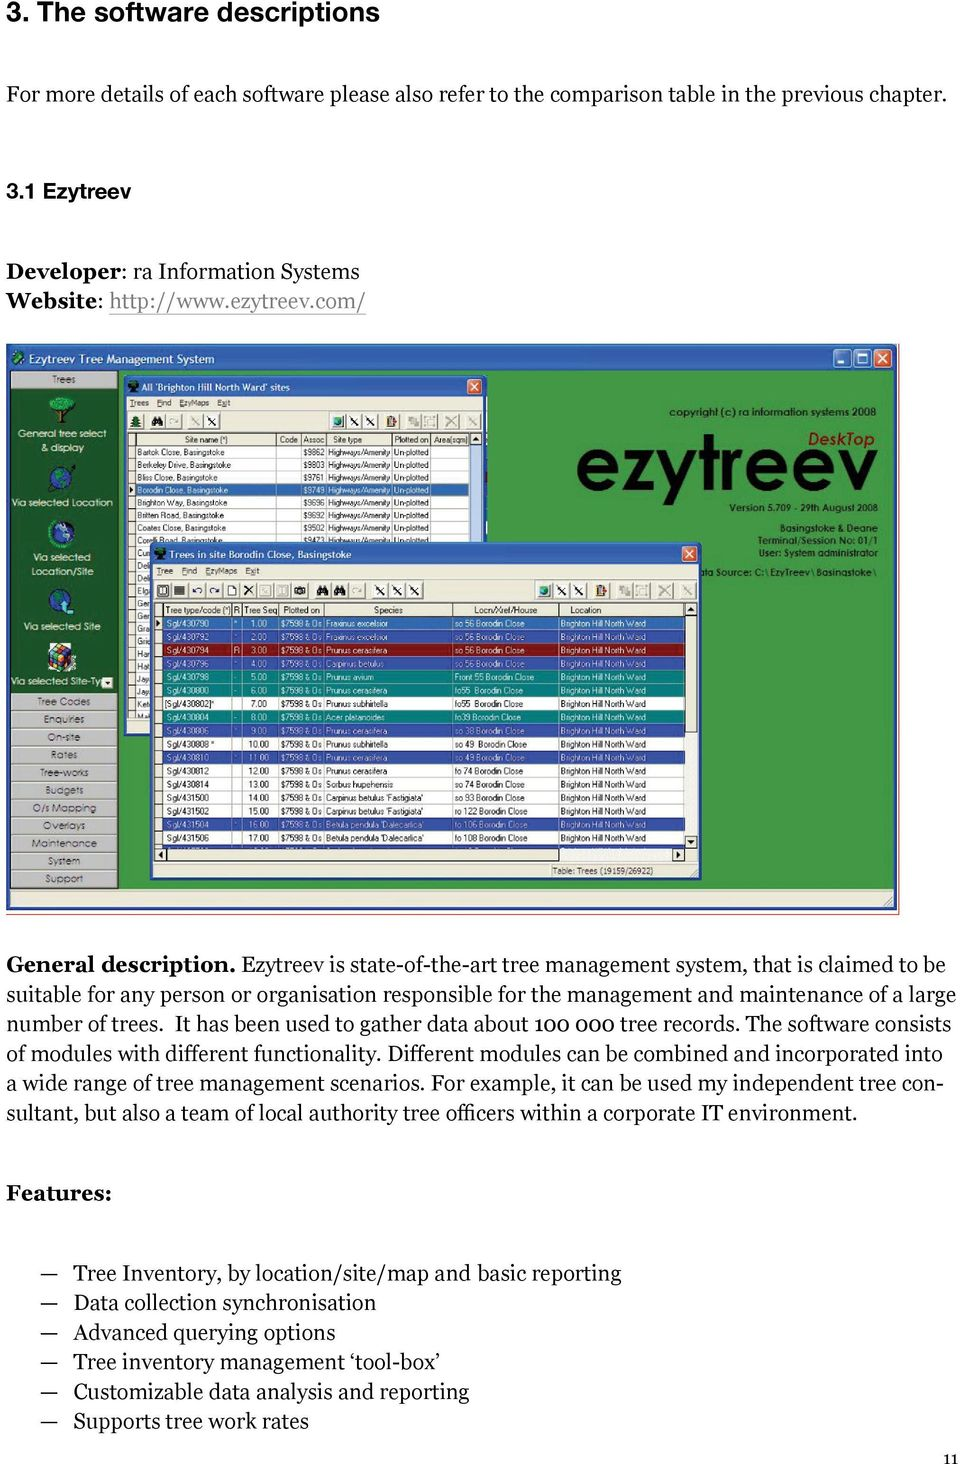 Ezytreev is state-of-the-art tree management system, that is claimed to be suitable for any person or organisation responsible for the management and maintenance of a large number of trees.